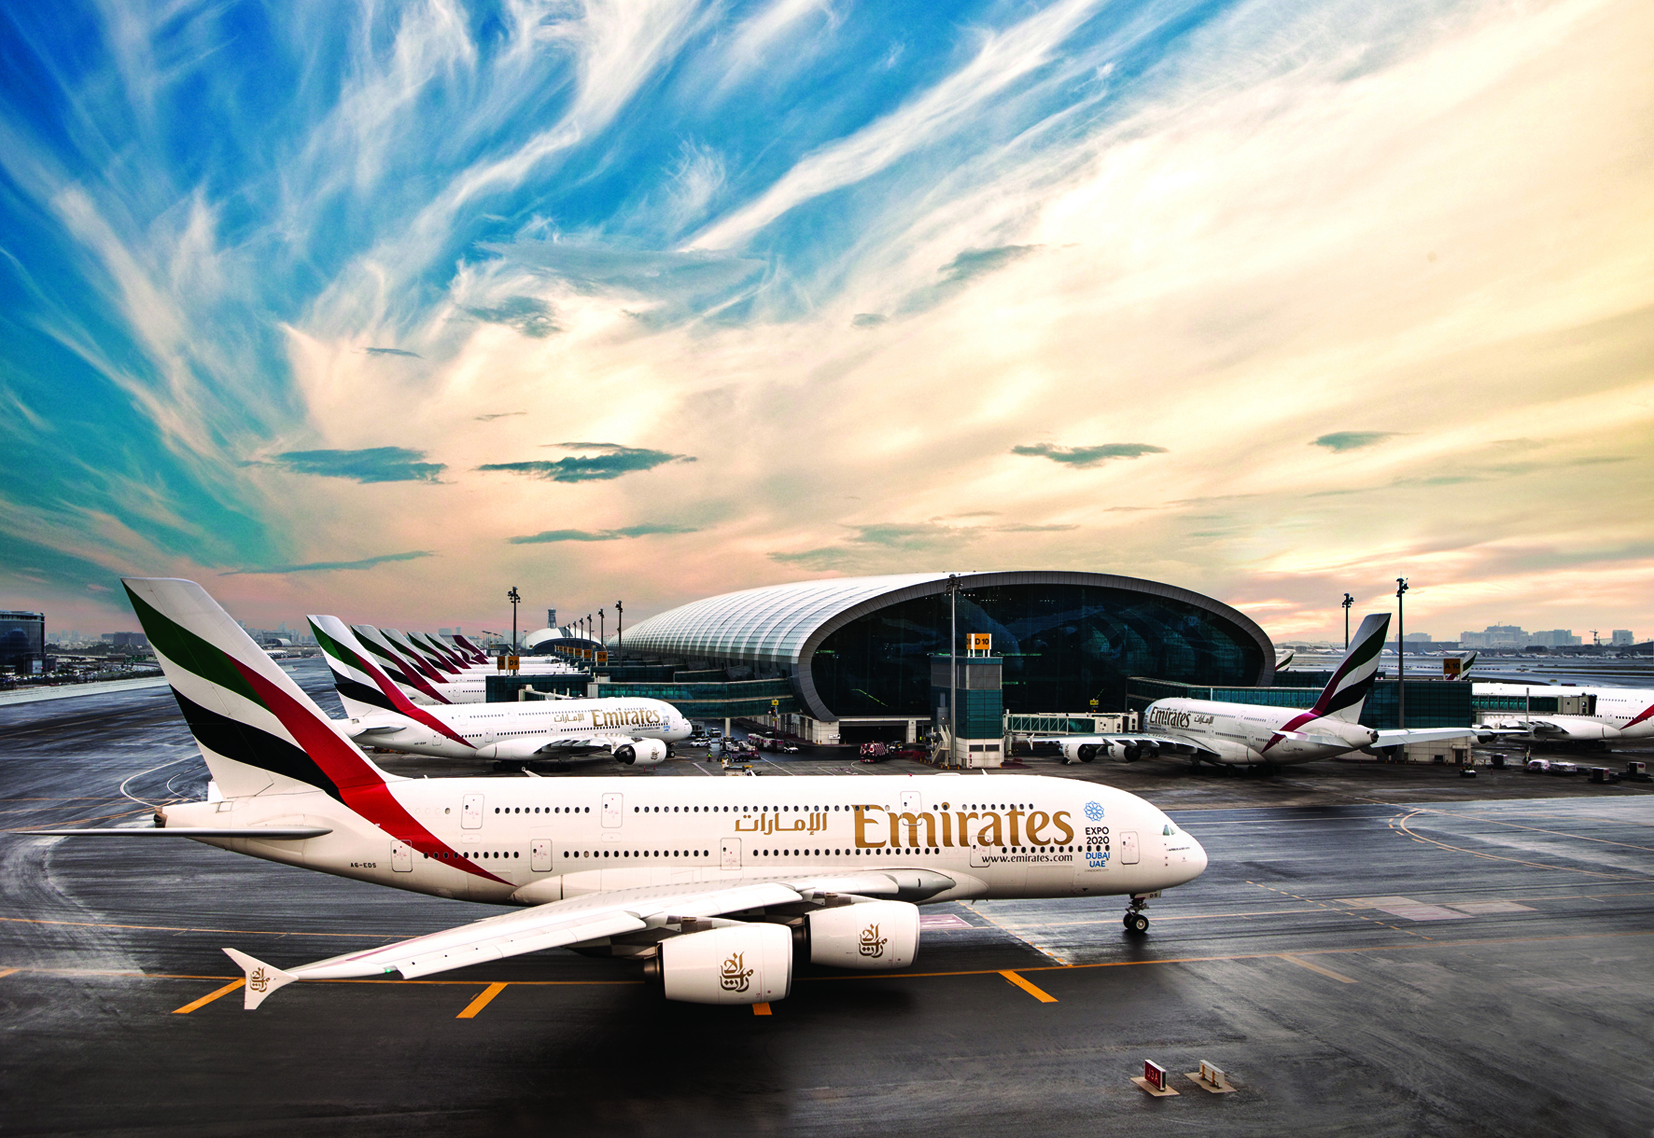 Large expansion plans in the pipeline for Emirates Airline in the next deacde